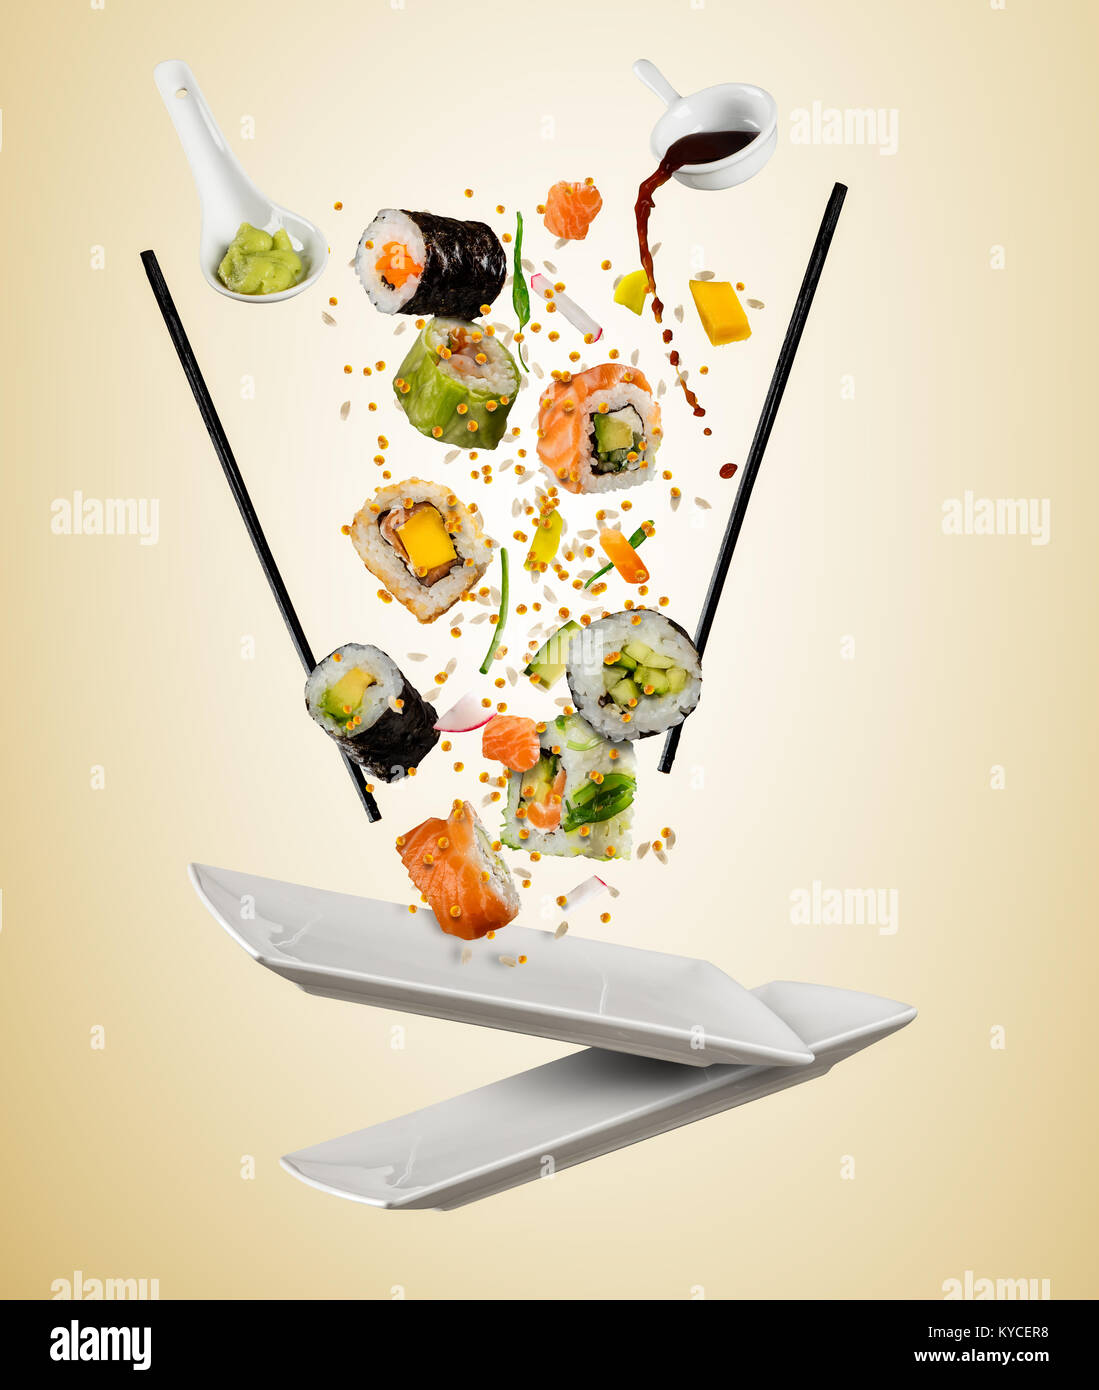 Flying Pieces Of Sushi With Wooden Chopsticks Separated On Beige